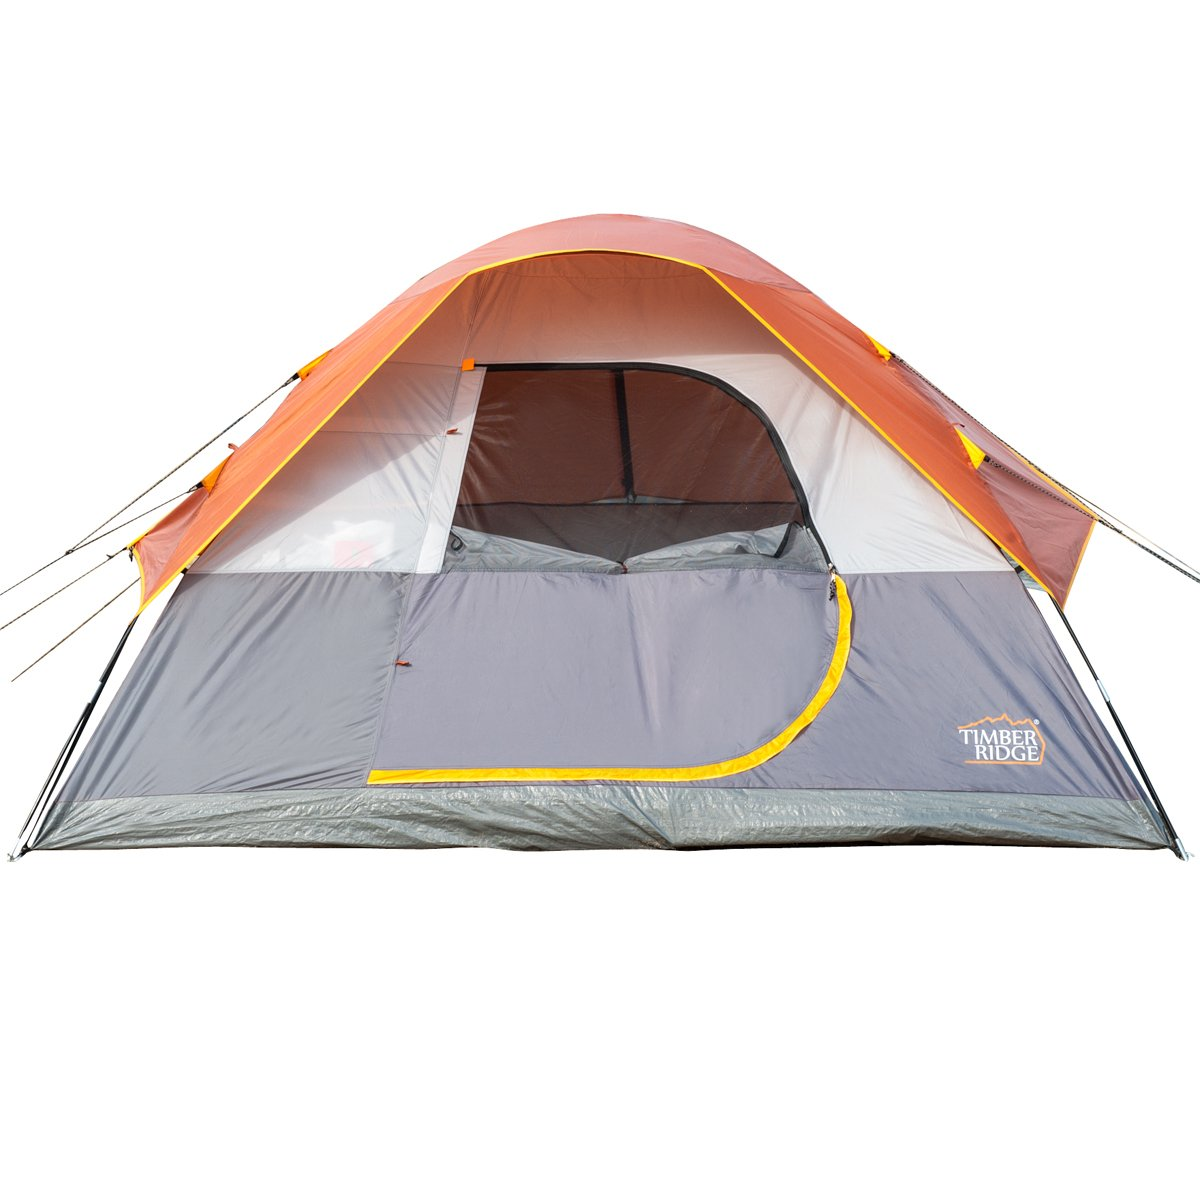 Motheru0027s Day 50% off on Timber Ridge 6 Person Family C&ing Tent D-Shape Door 3 Seasons $72.99 + FS  sc 1 st  CNET : timber ridge tent - memphite.com